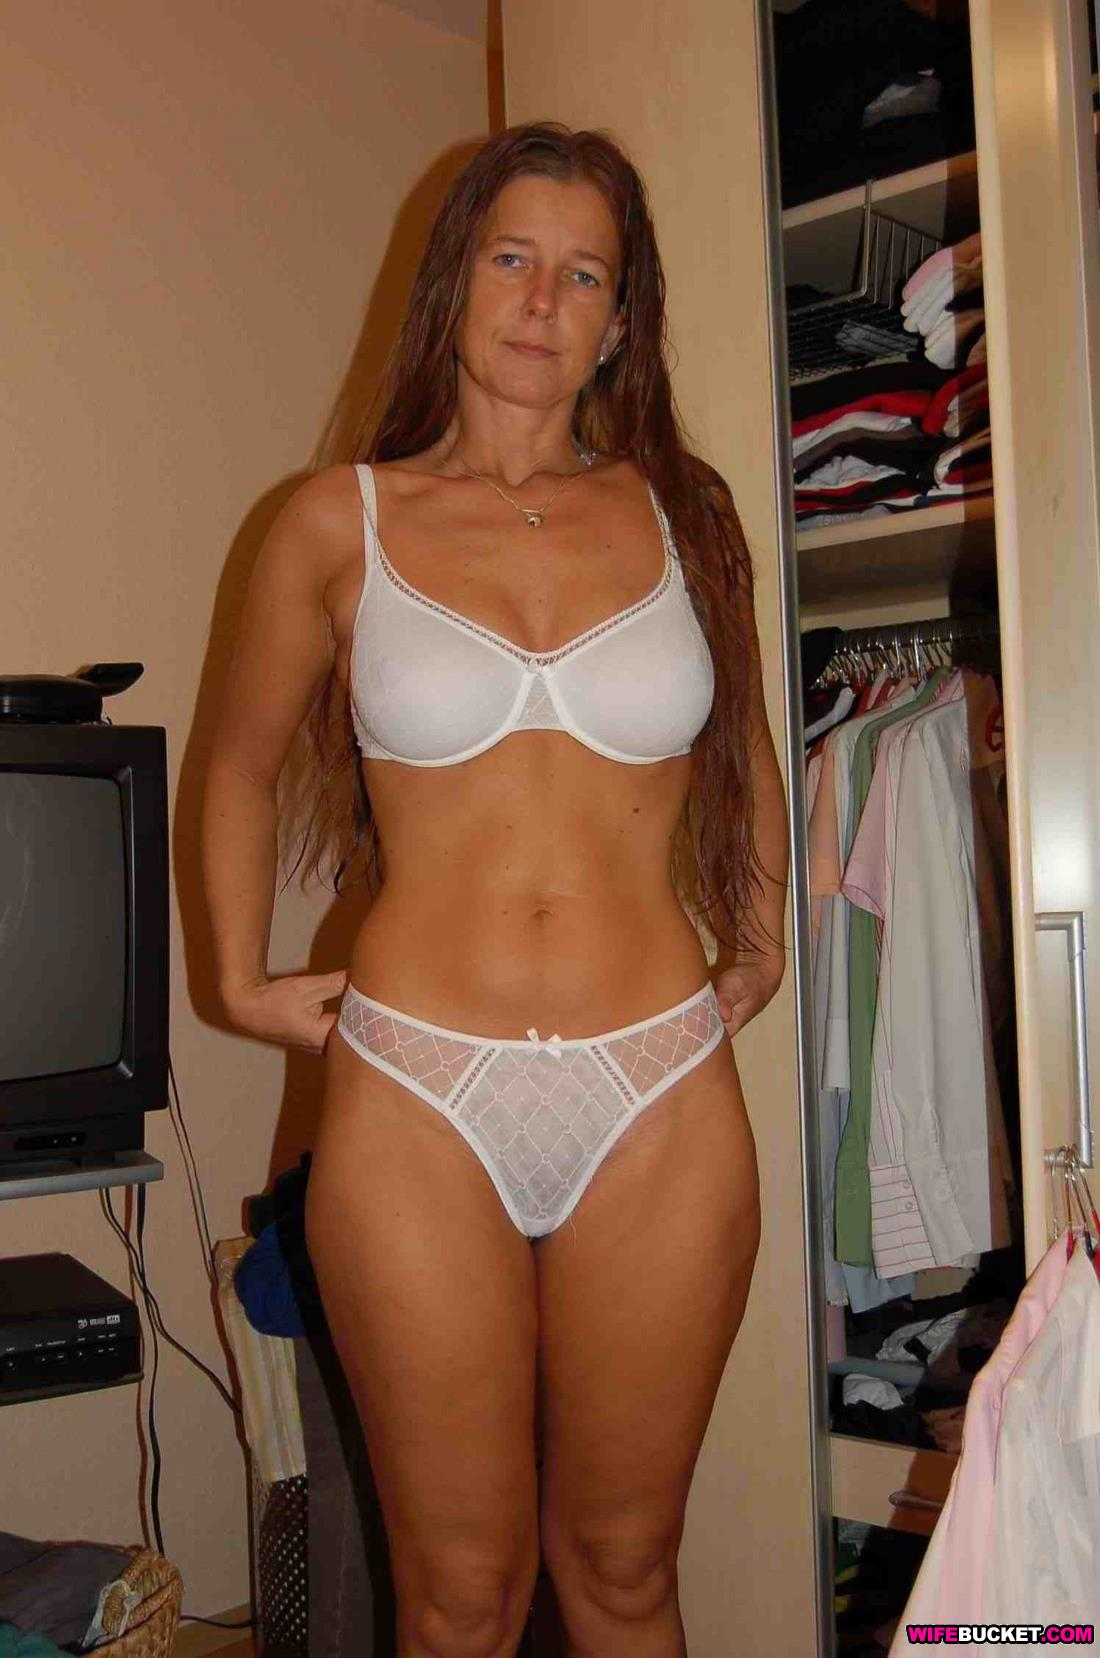 Wifebucket  Funny Nudes From An Older Amateur Woman-7217